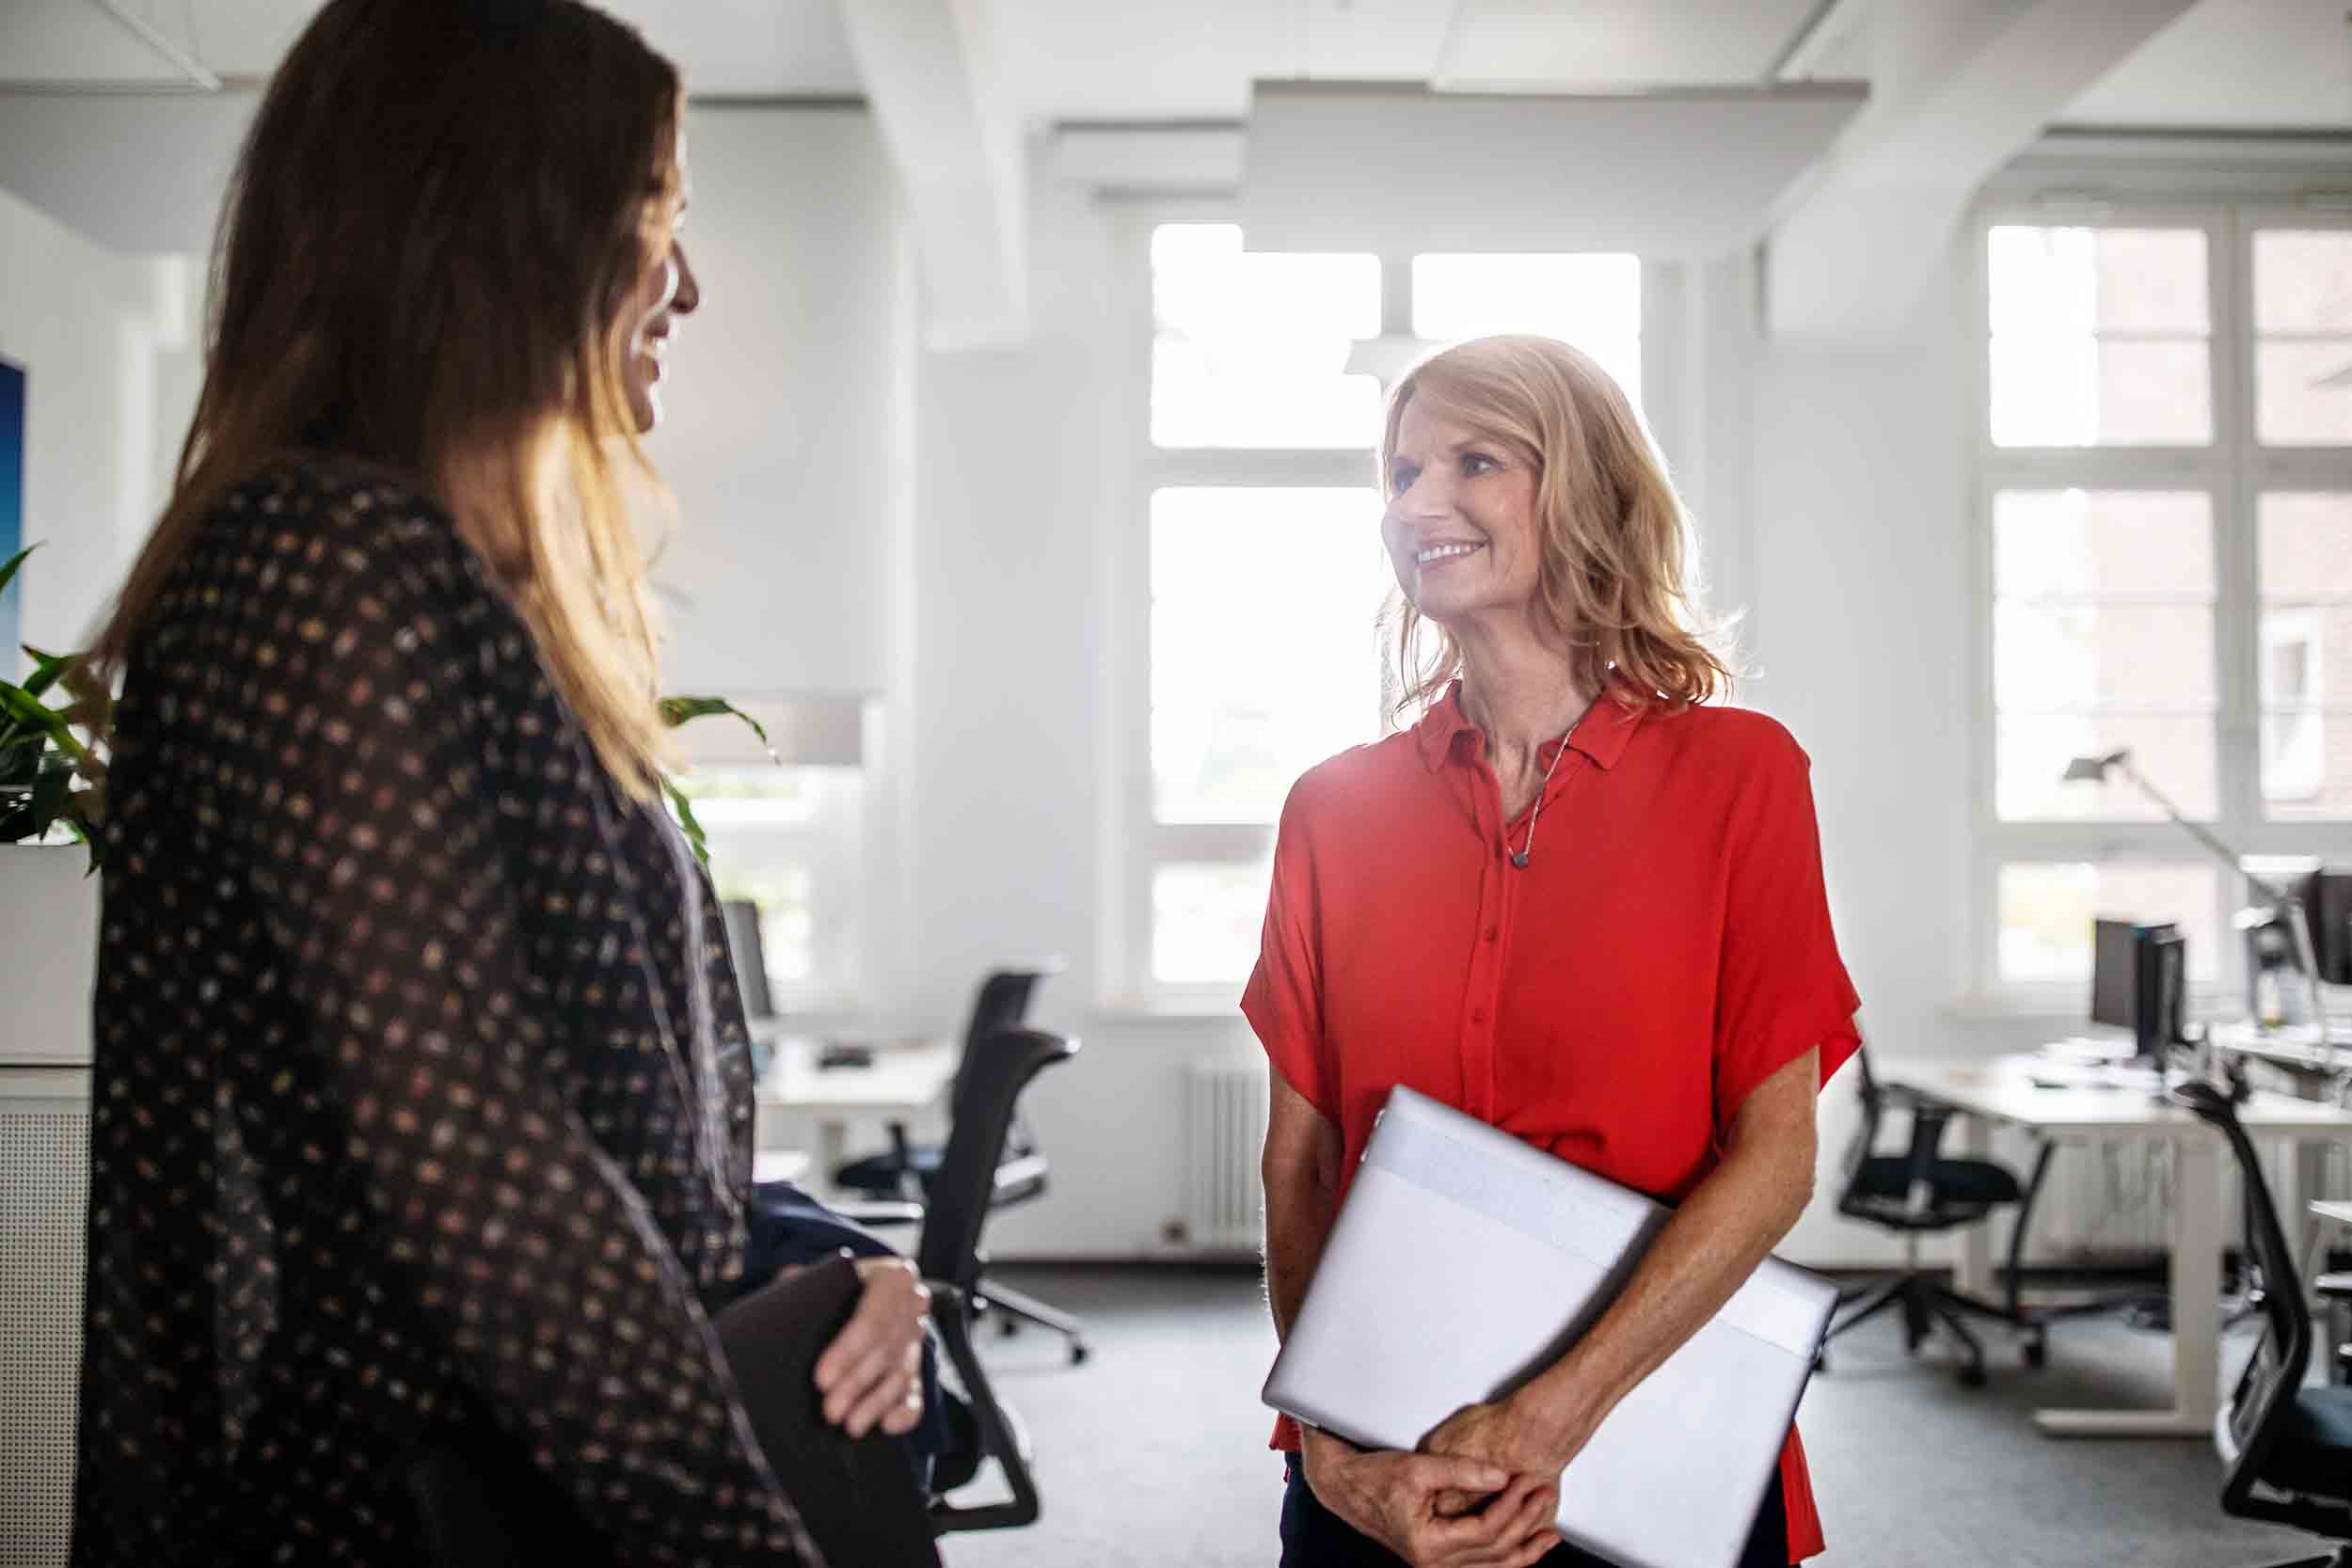 Smiling businesswoman discussing with female colleague while standing in creative office